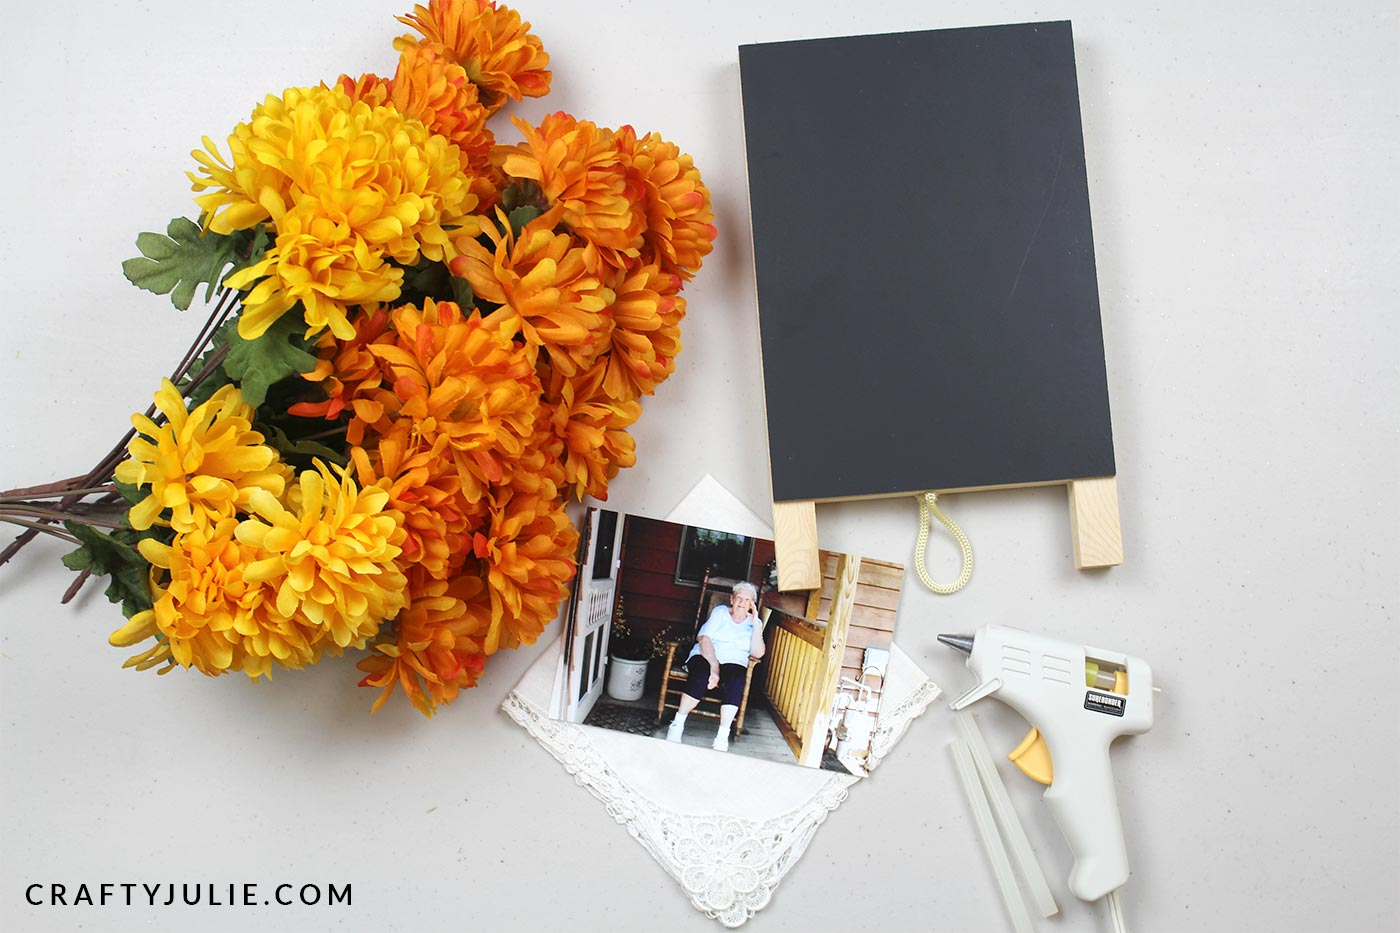 mini chalkboard easel, orange and yellow fake flowers, glue gun, and photo used to make easy DIY flower picture frame